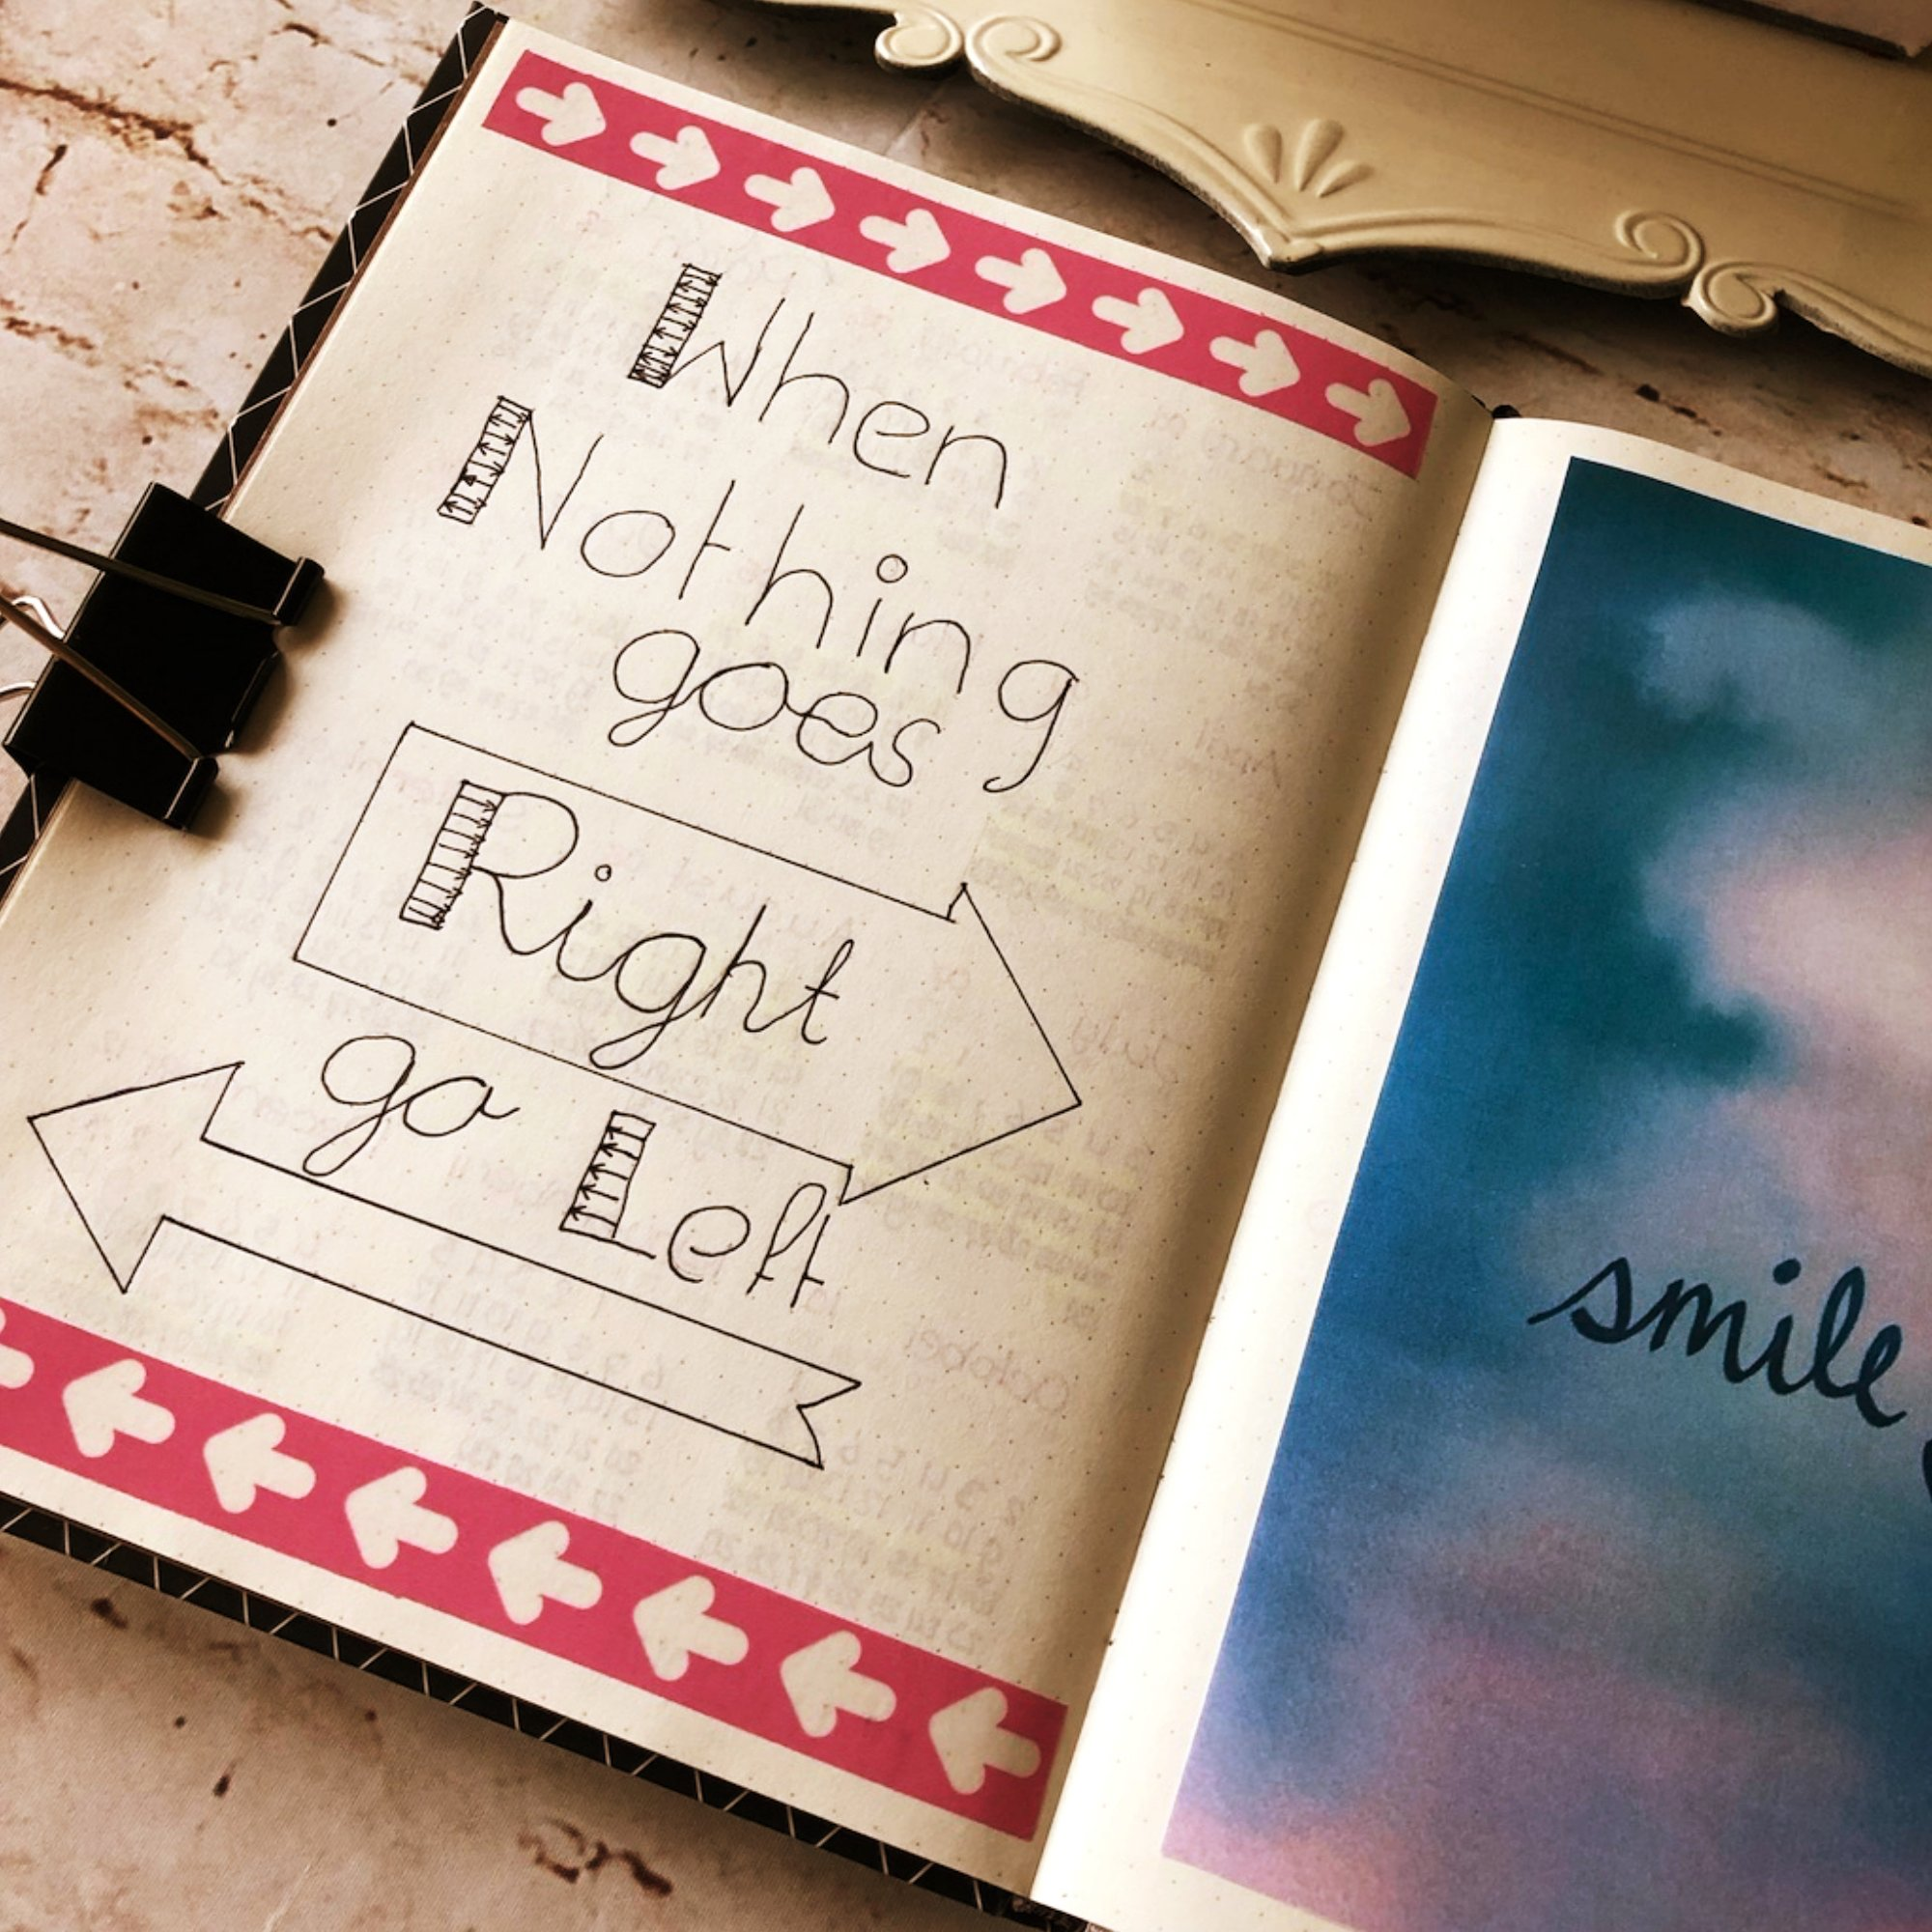 Creative journaling Quotes #2 - When nothing goes right go left - itstartswithacoffee.com #journaling #creativejournaling #quotes